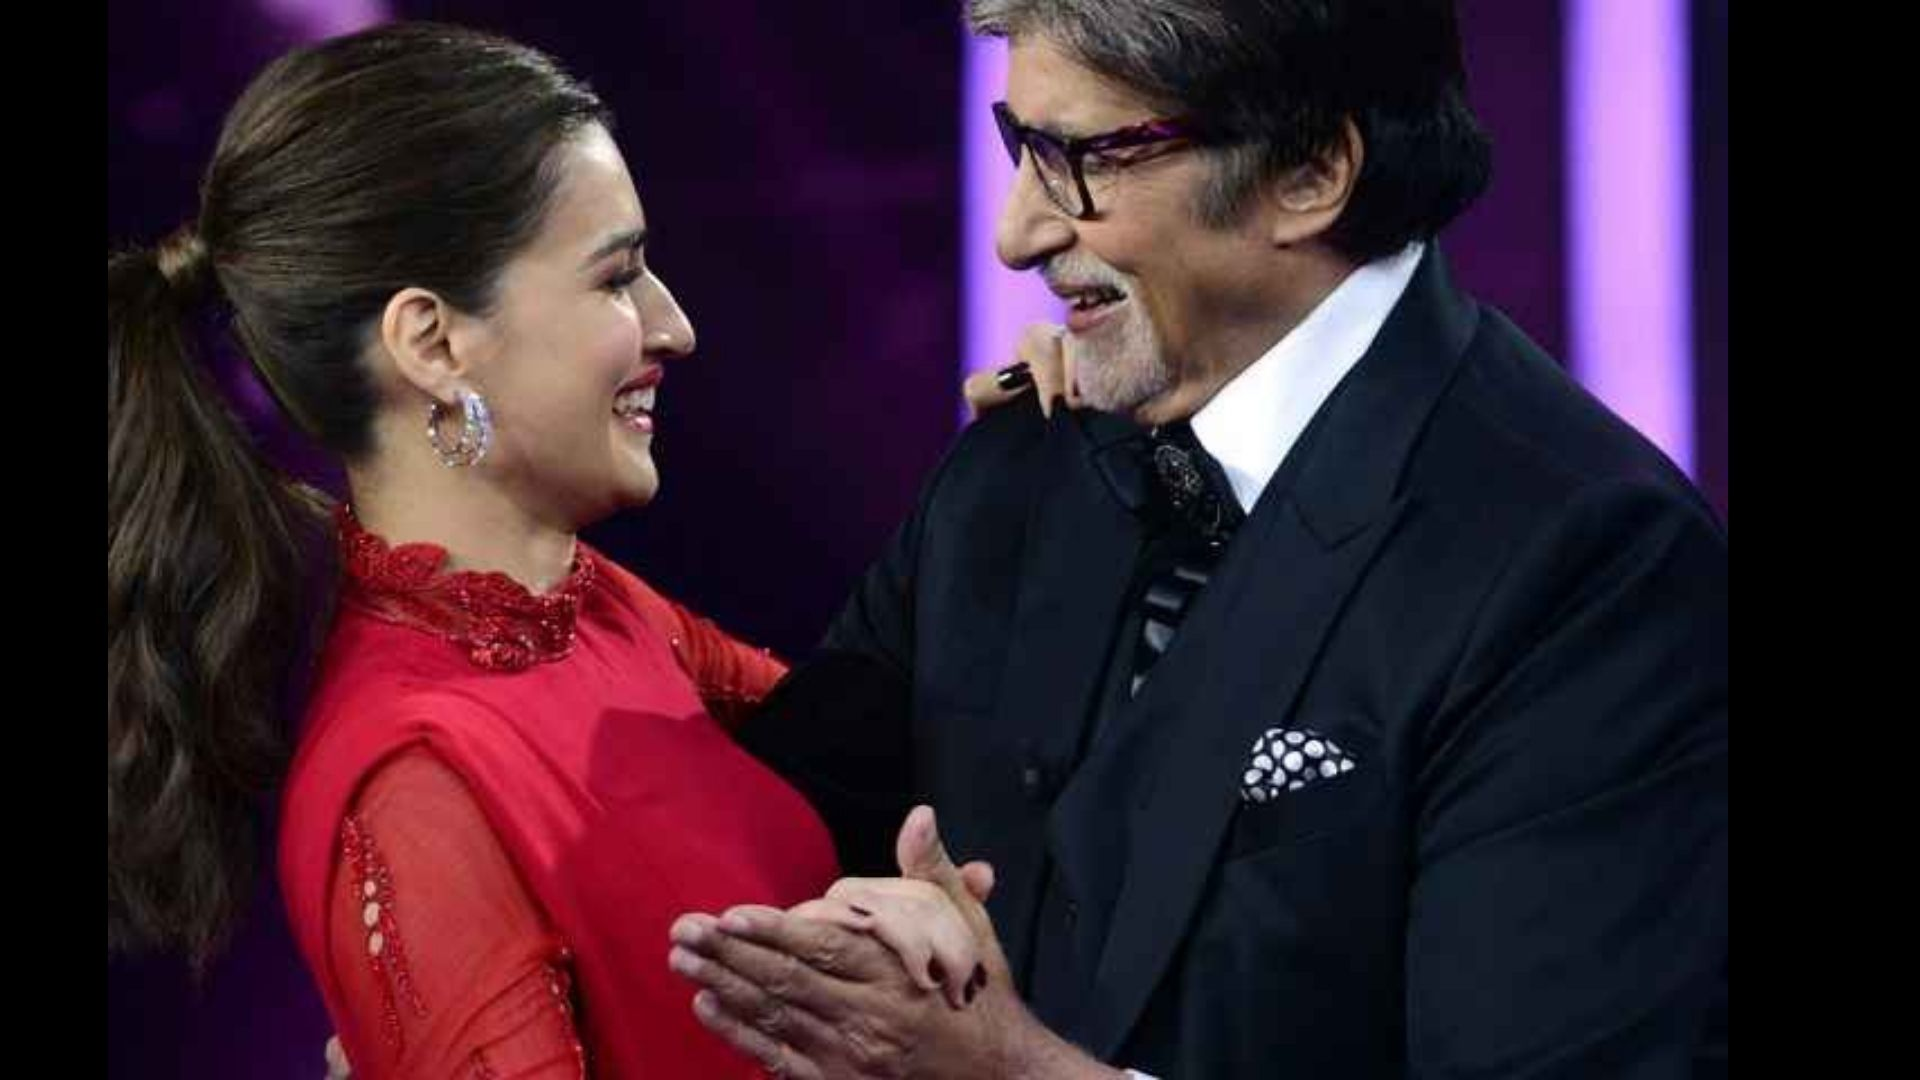 Kriti Sanon Can't Get Enough Of Amitabh Bachchan As She Grooves With Him On The KBC Stage; Pens An Adorable Note